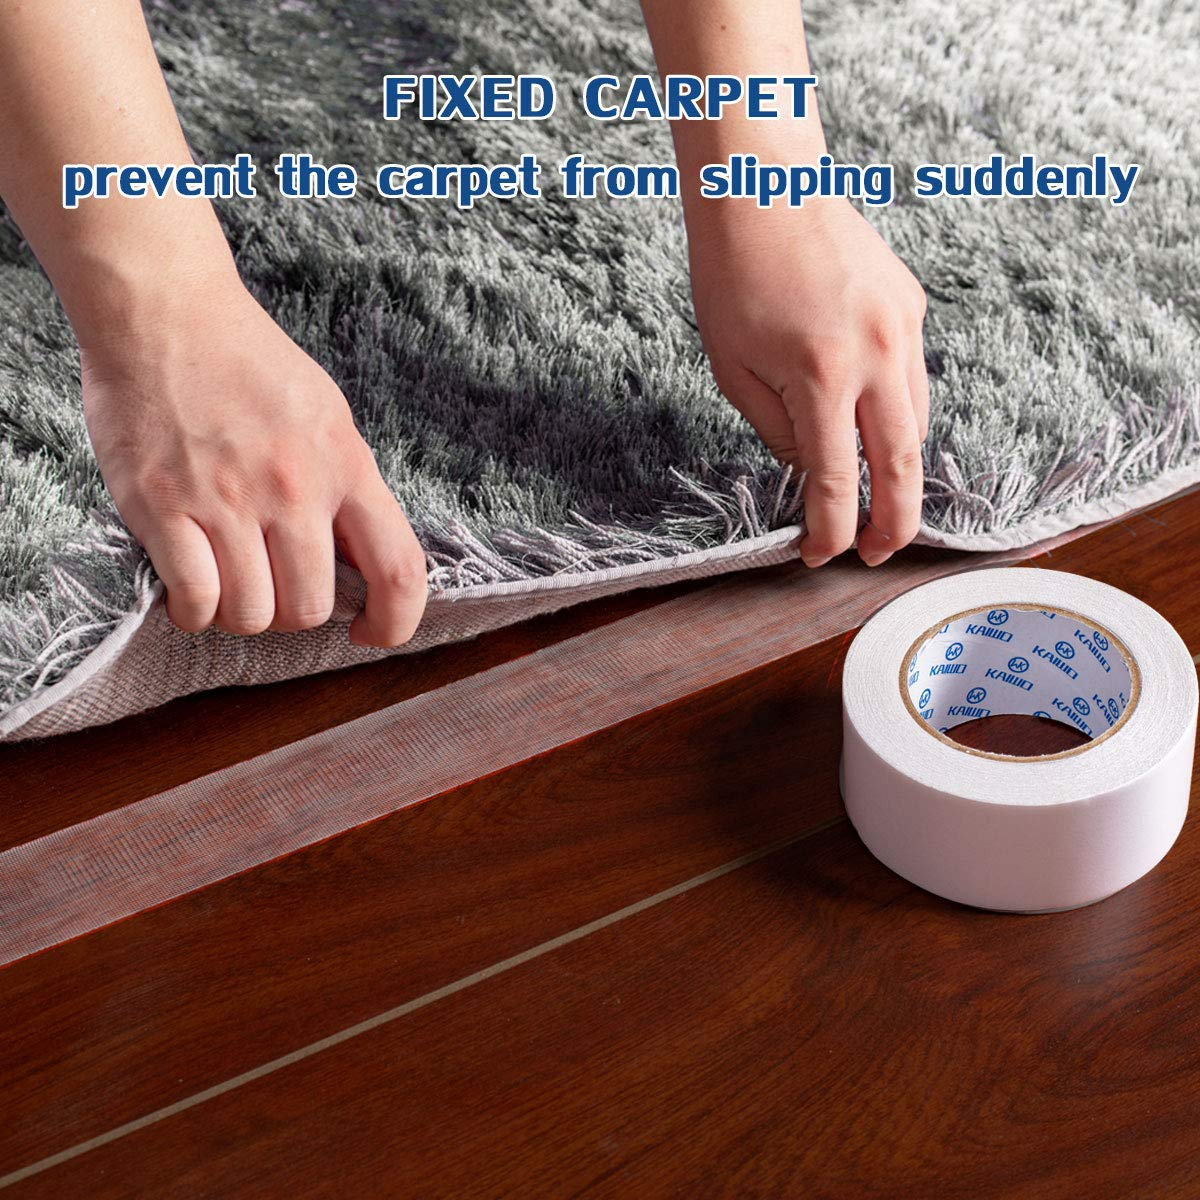 Rug Grippers for Hardwood Floors Removeable and Multipurpose Tape 3 Rolls Double Sided Heavy Duty Carpet Tape White 2 Inch x 20 Yards